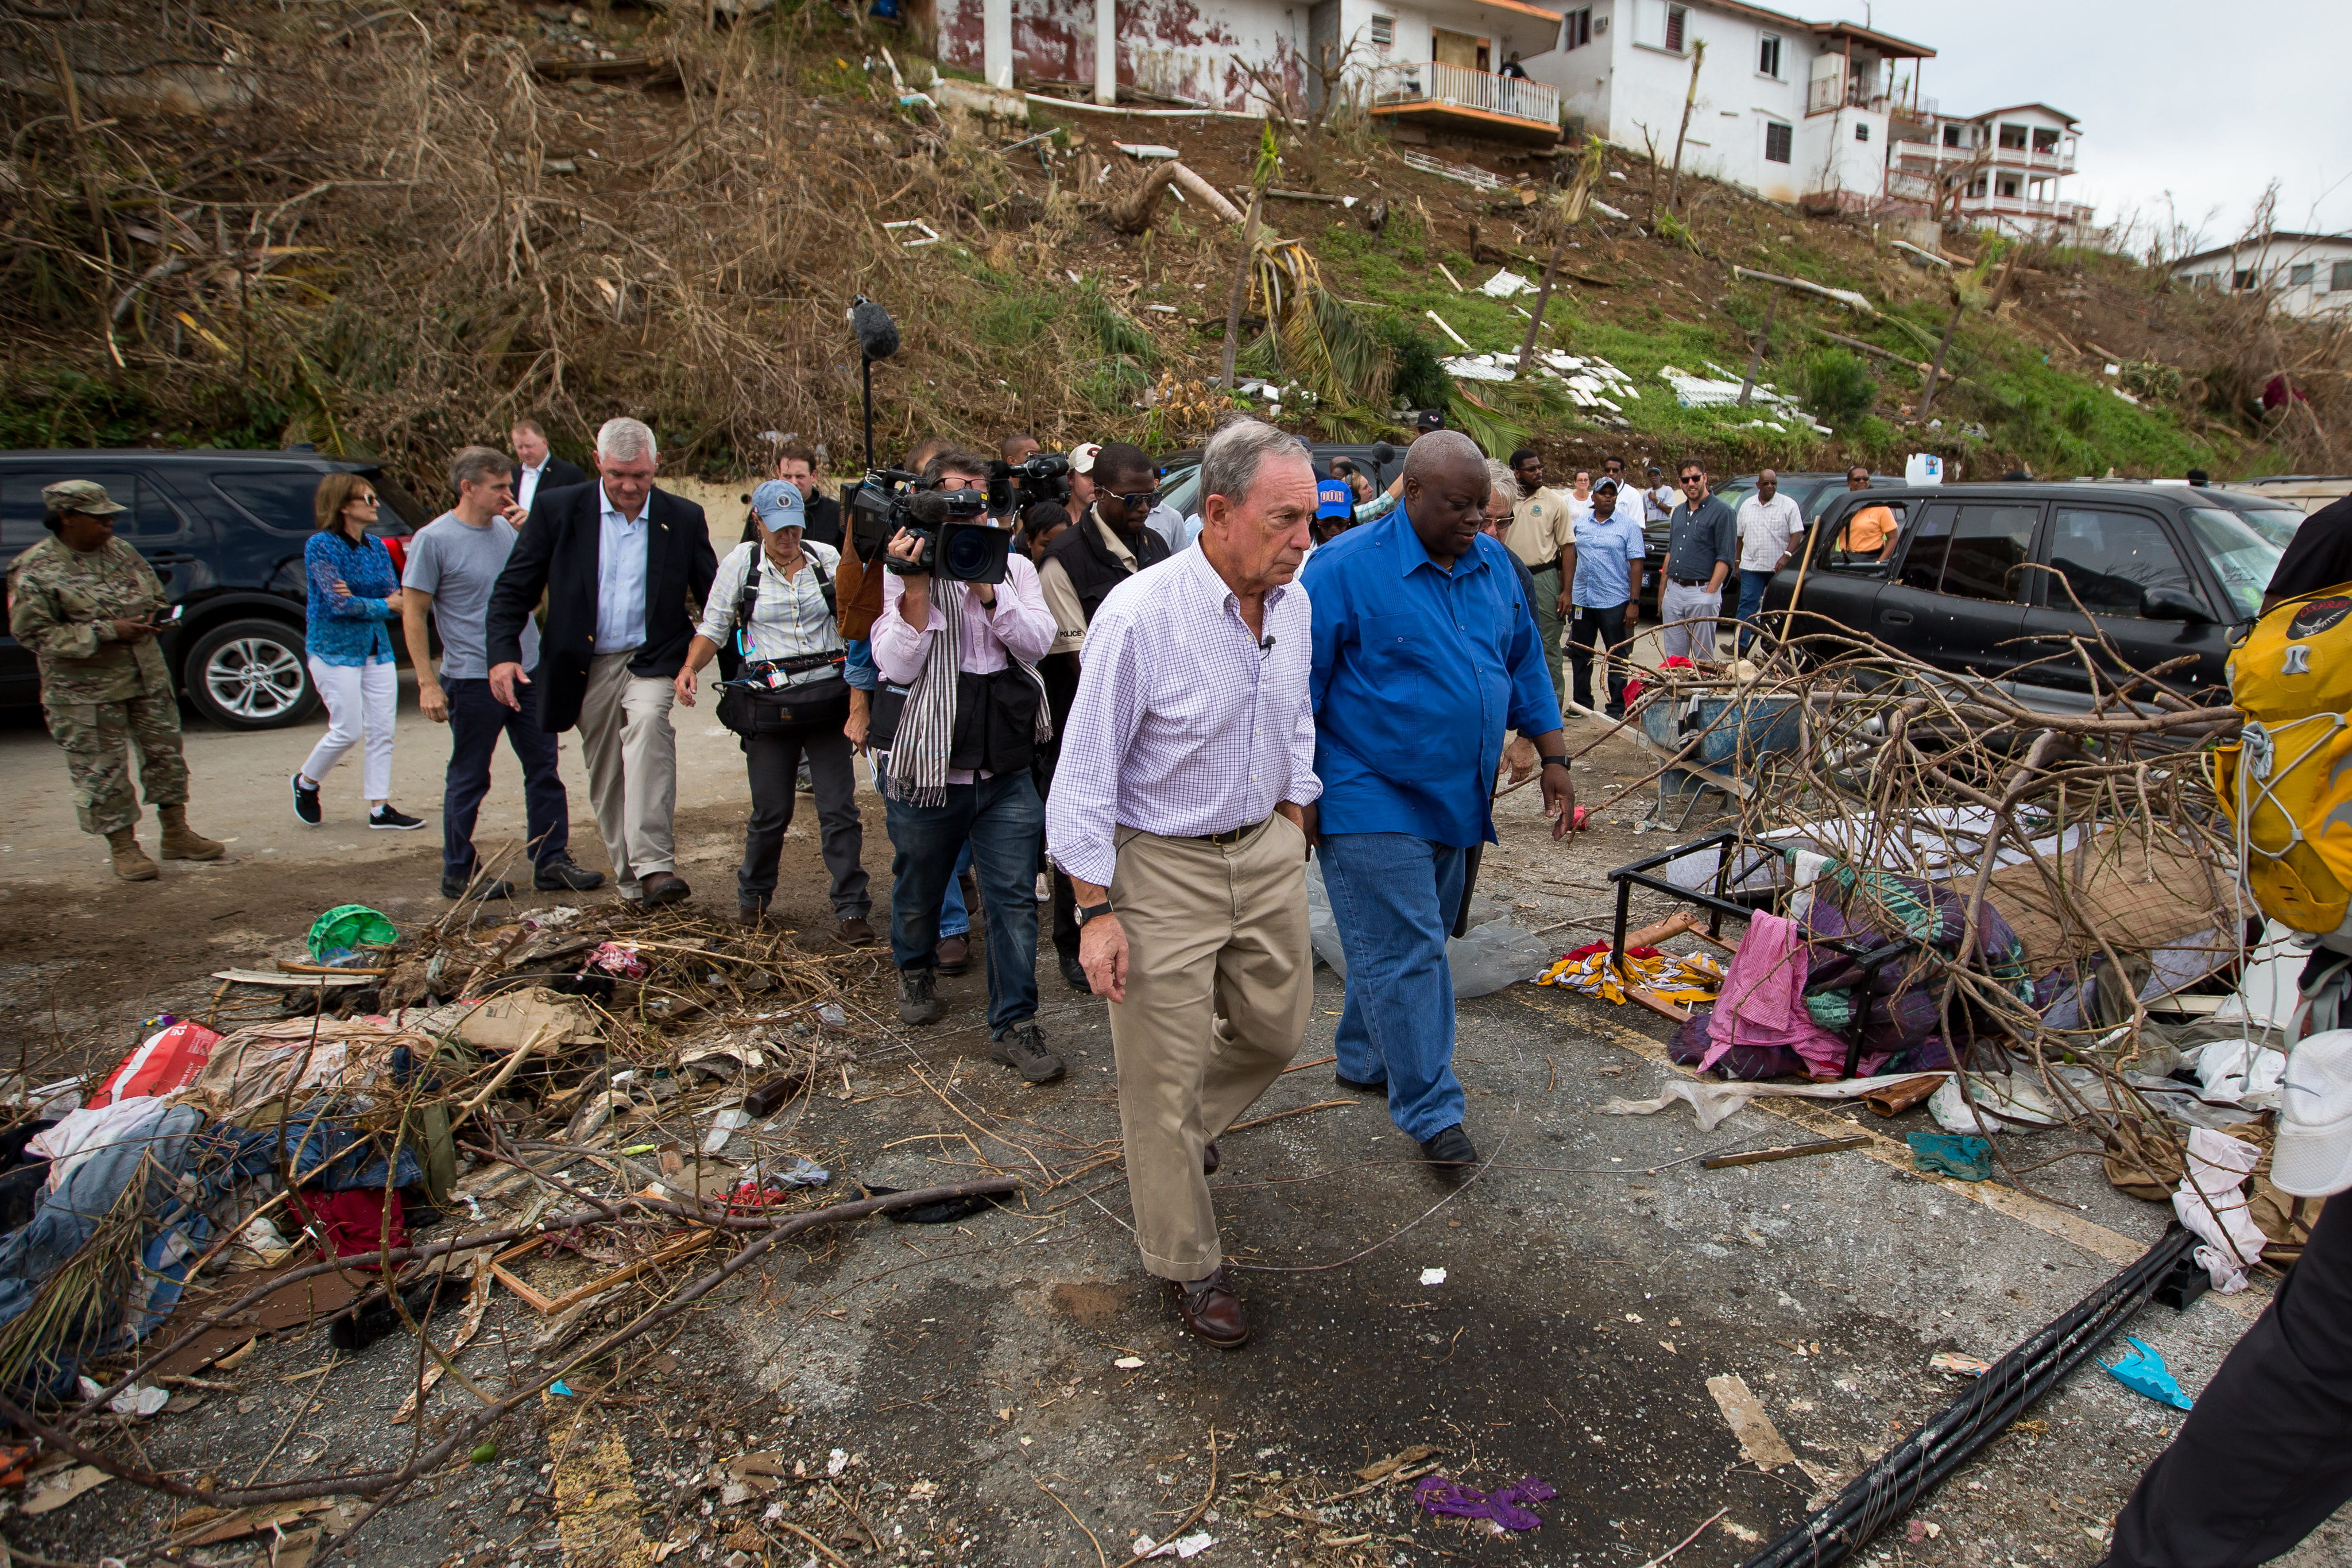 Mike Bloomberg tours the aftermath of Hurricanes Maria and Irma in the U.S .Virgin Islands with Governor Mapp.